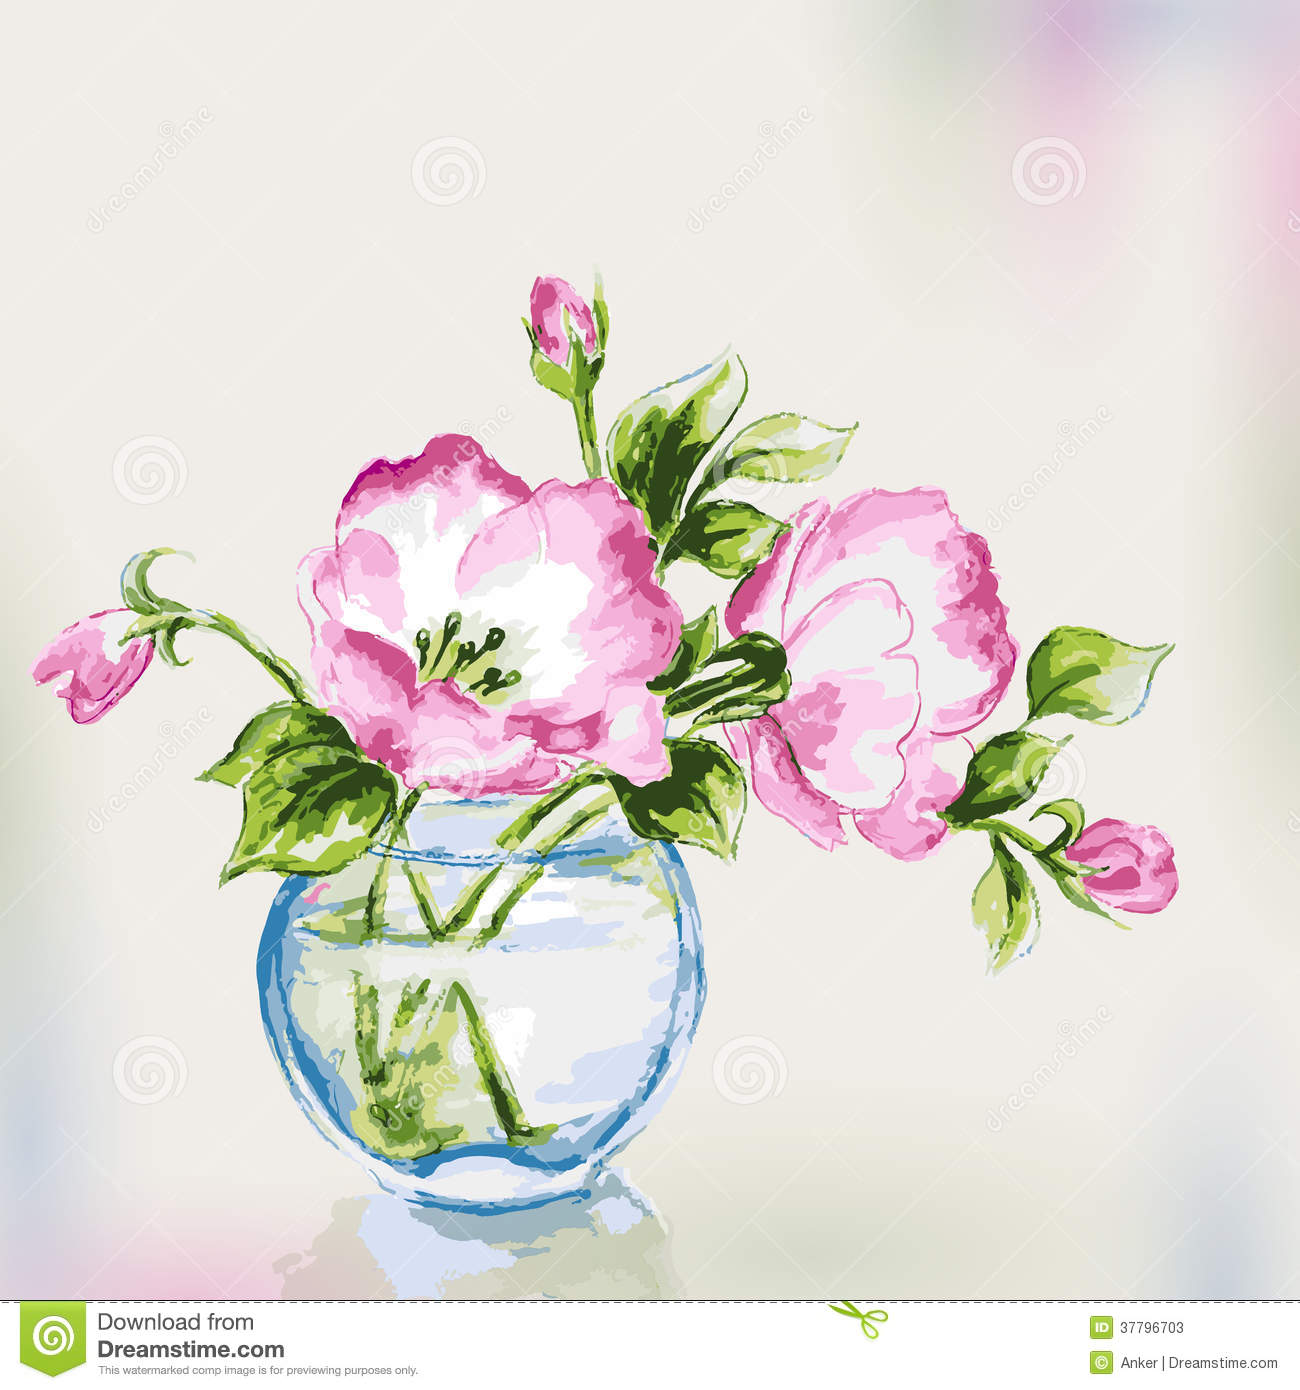 Spring watercolor flowers in vase stock photos image for Spring flowers watercolor